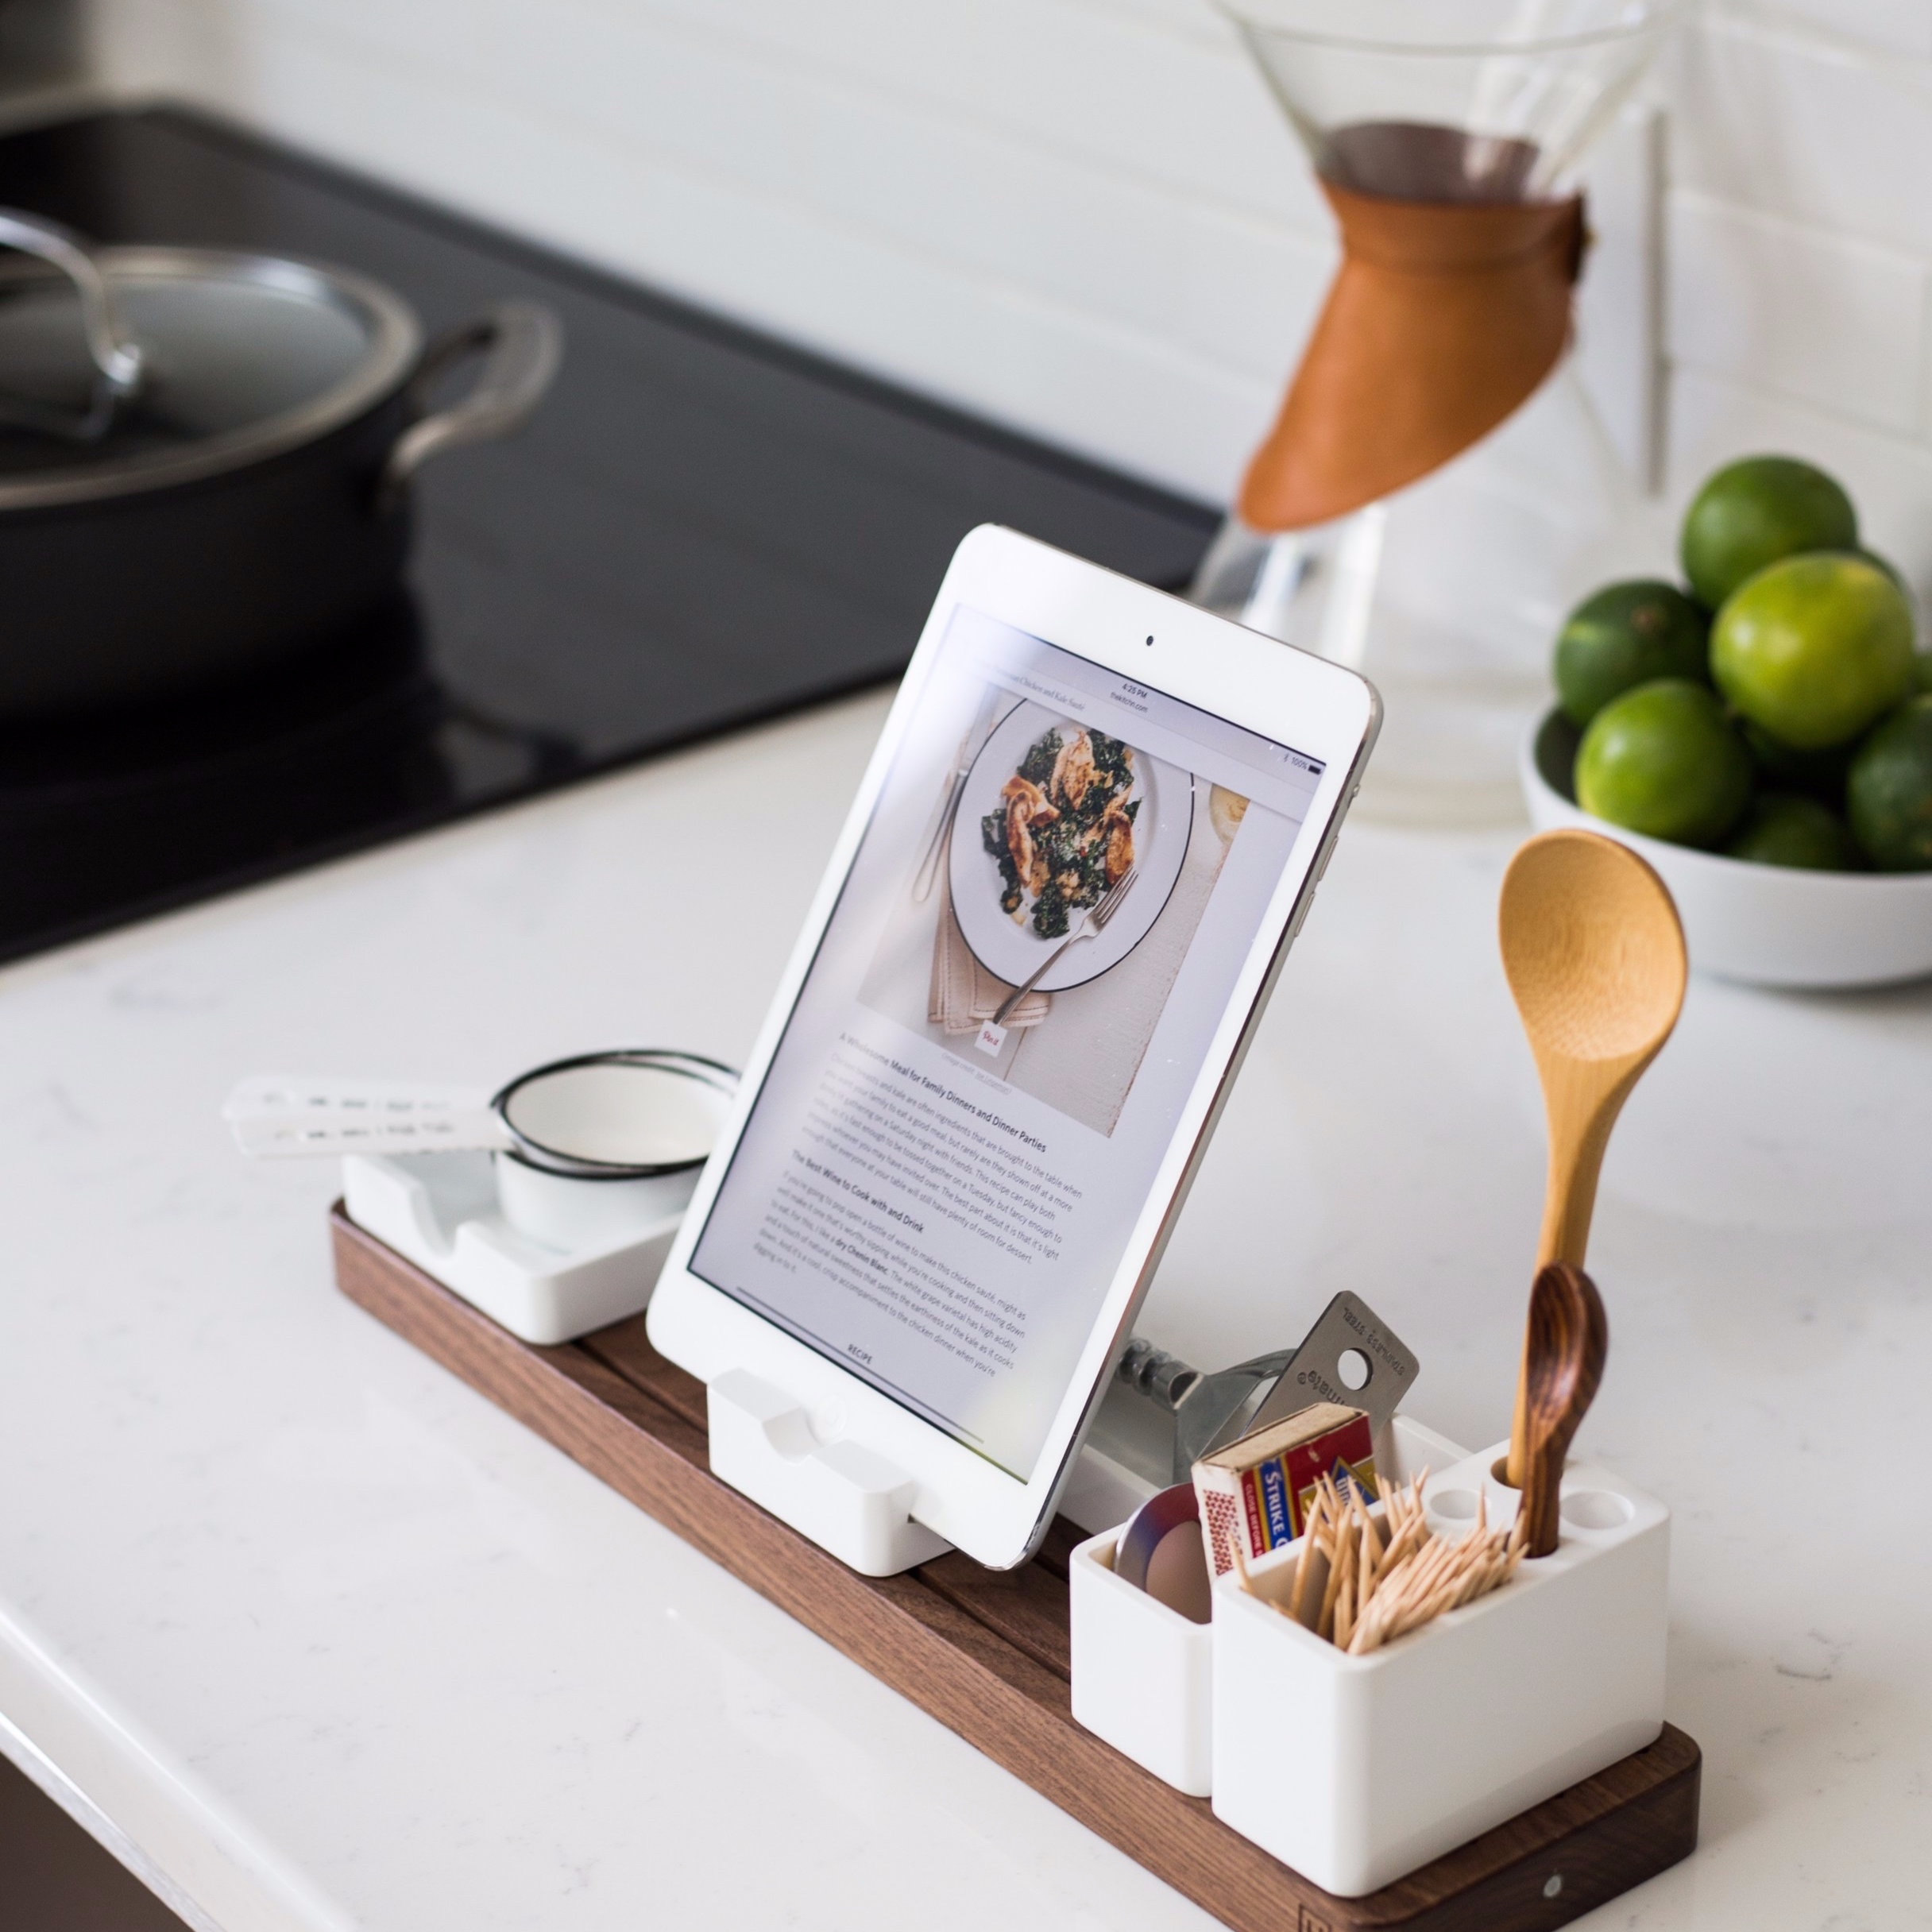 Online Classes - From home basics to professional skills, The Genomic Kitchen's online coursework transforms the kitchen into a center for health and longevity.